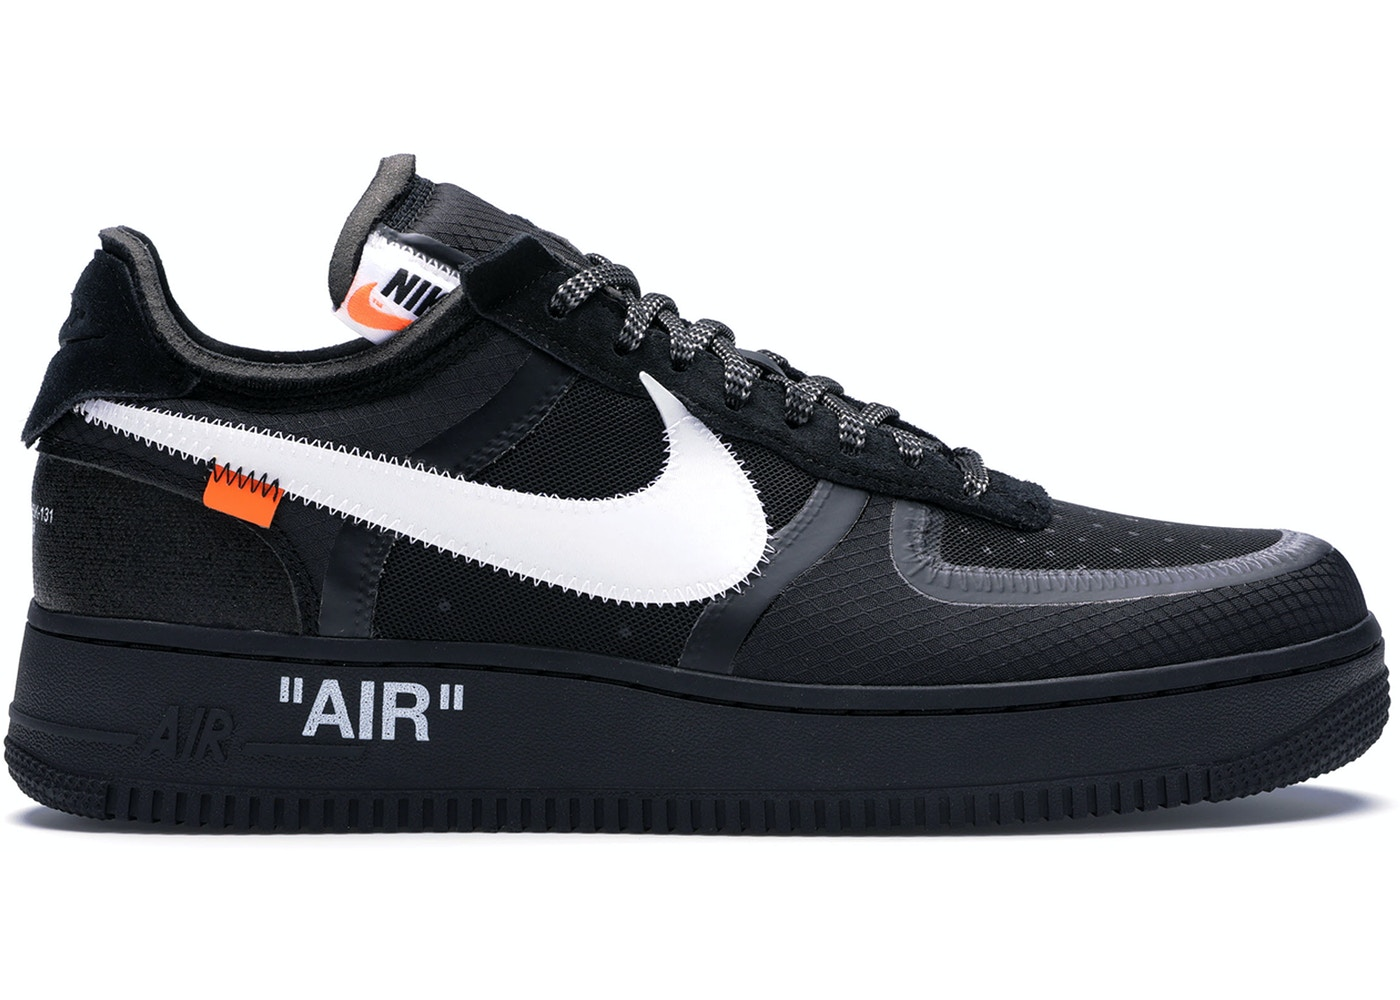 9f2d7d2b1b Air Force 1 Low Off-White Black White - AO4606-001